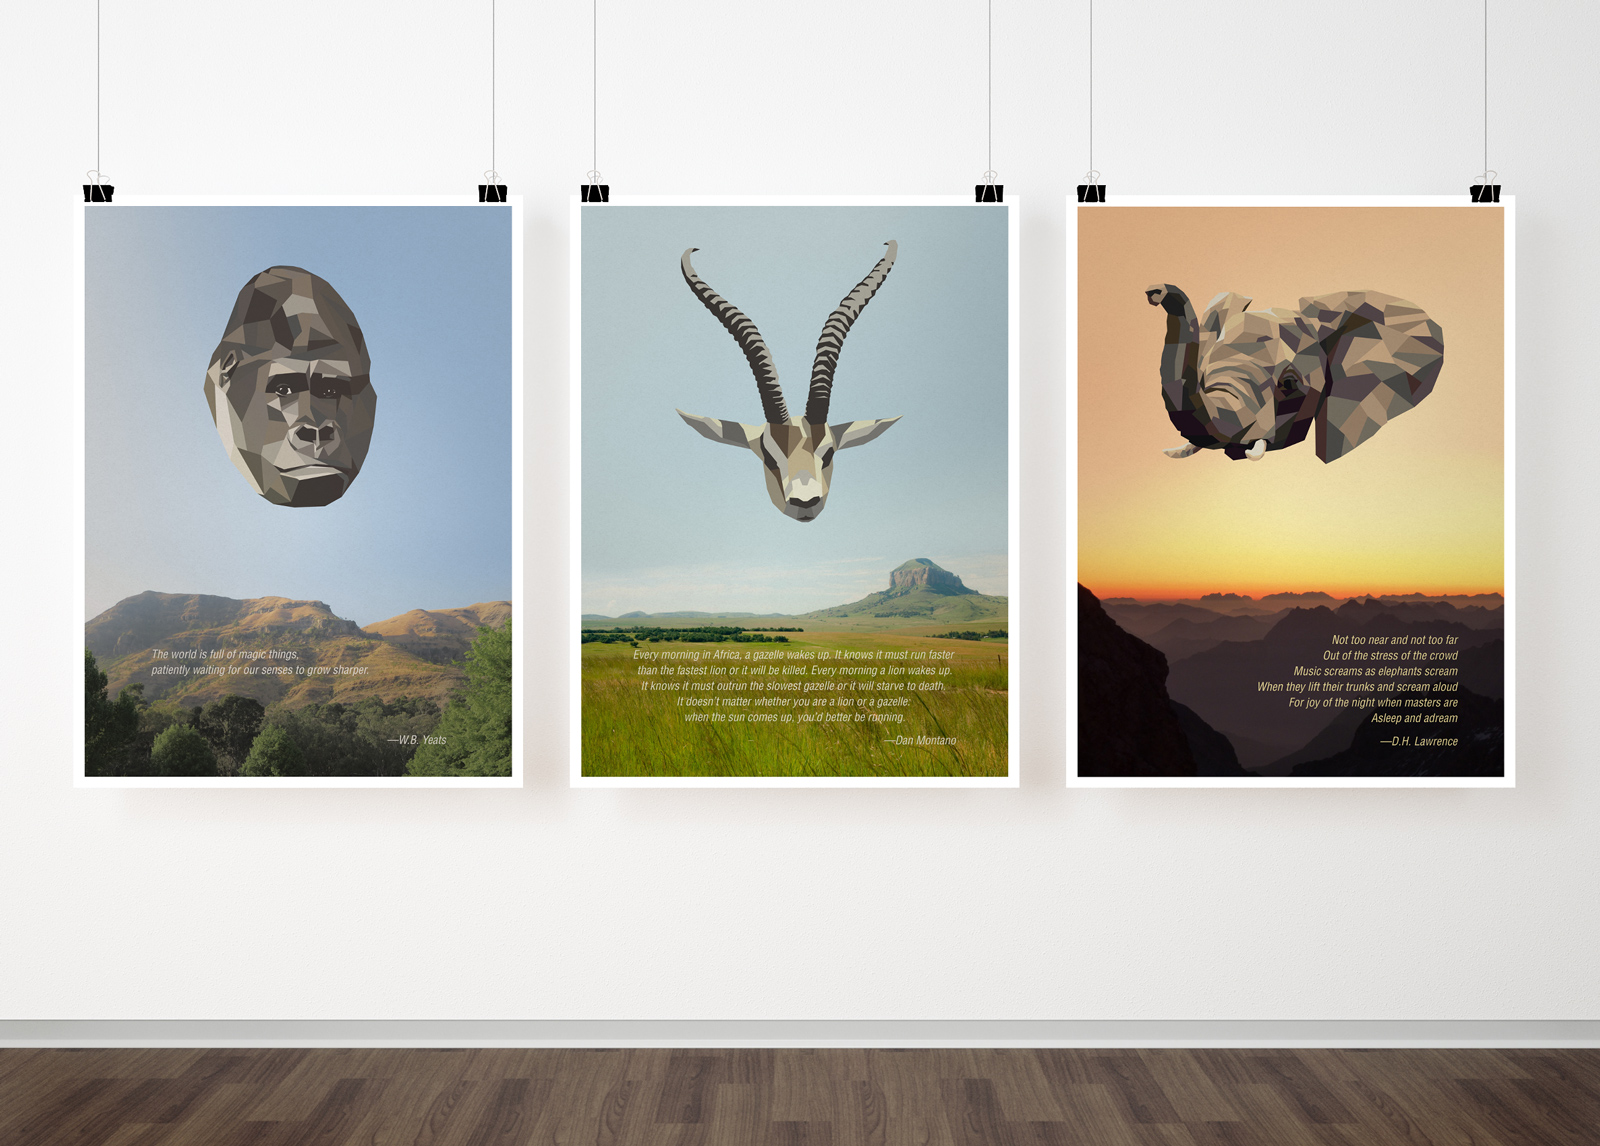 Safari animals in a low-poly style on landscapes with inspirational quotes